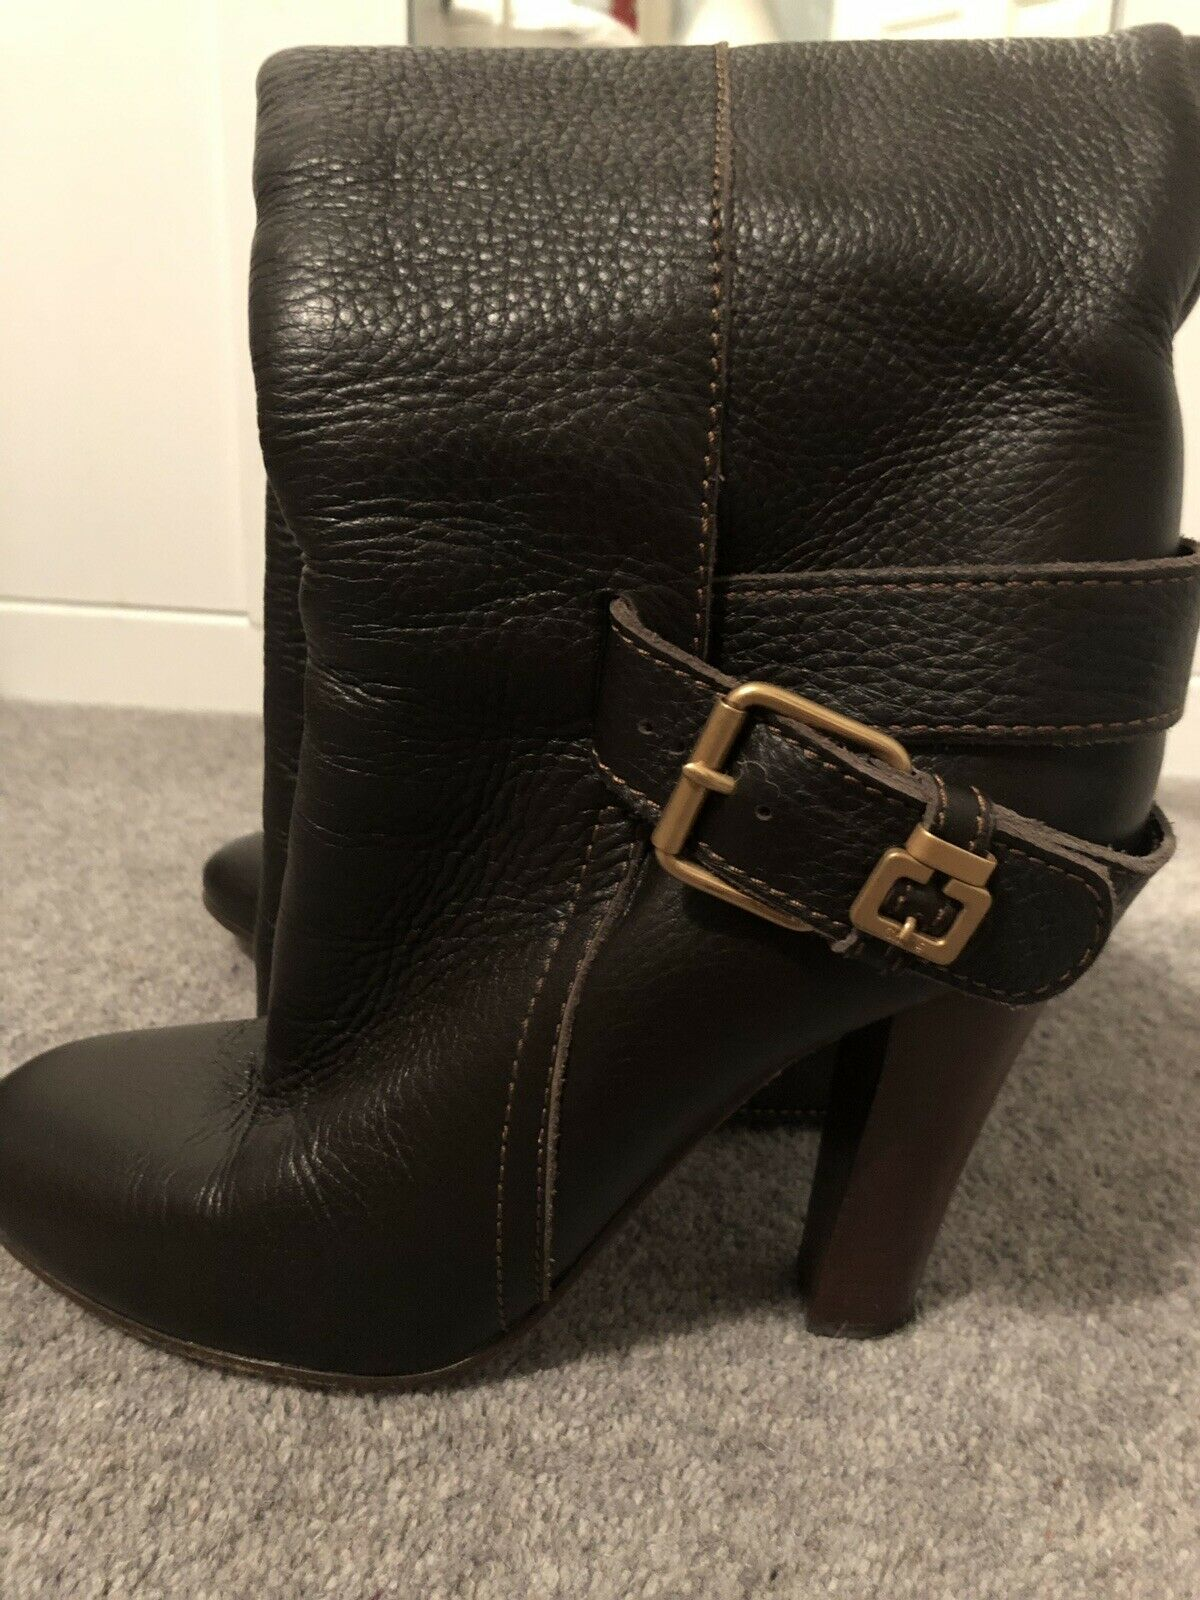 Chloe Dark Brown Knee High High Heel Buckle Boots Size 38.5